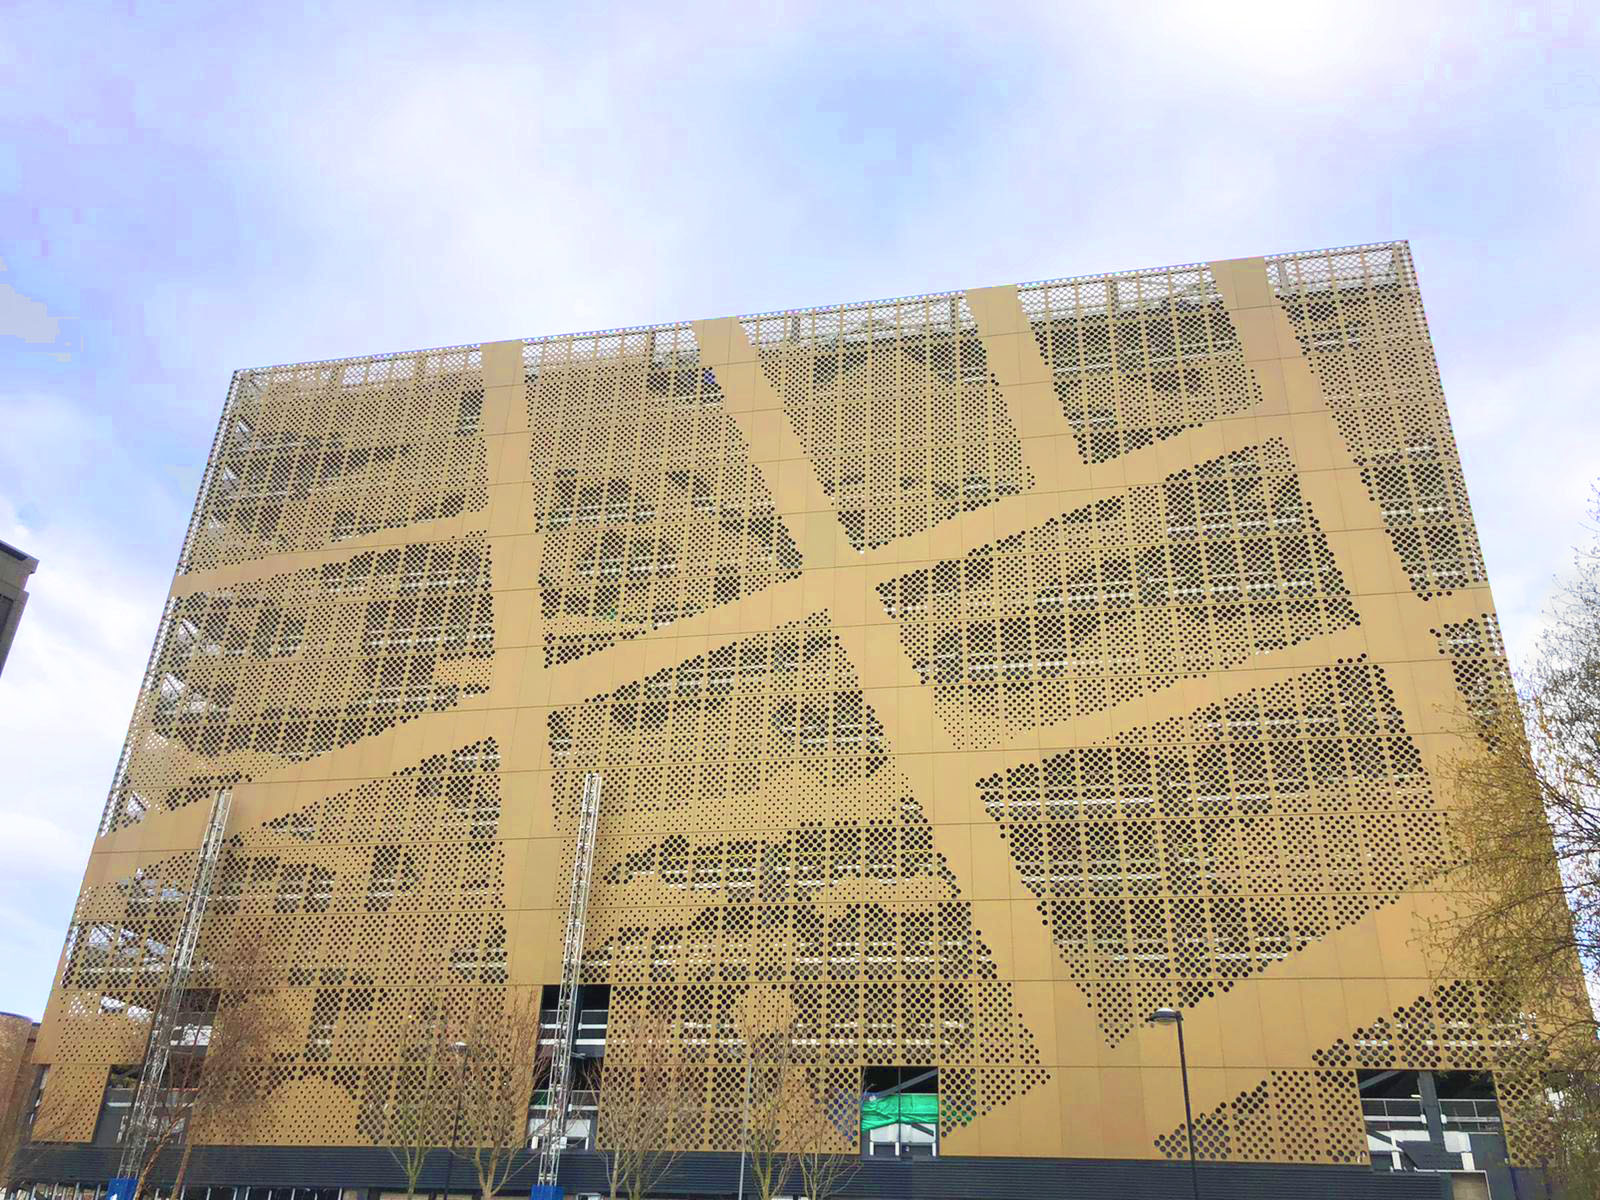 Architectural façade creates intriguing design on 12-storey Liverpool car park